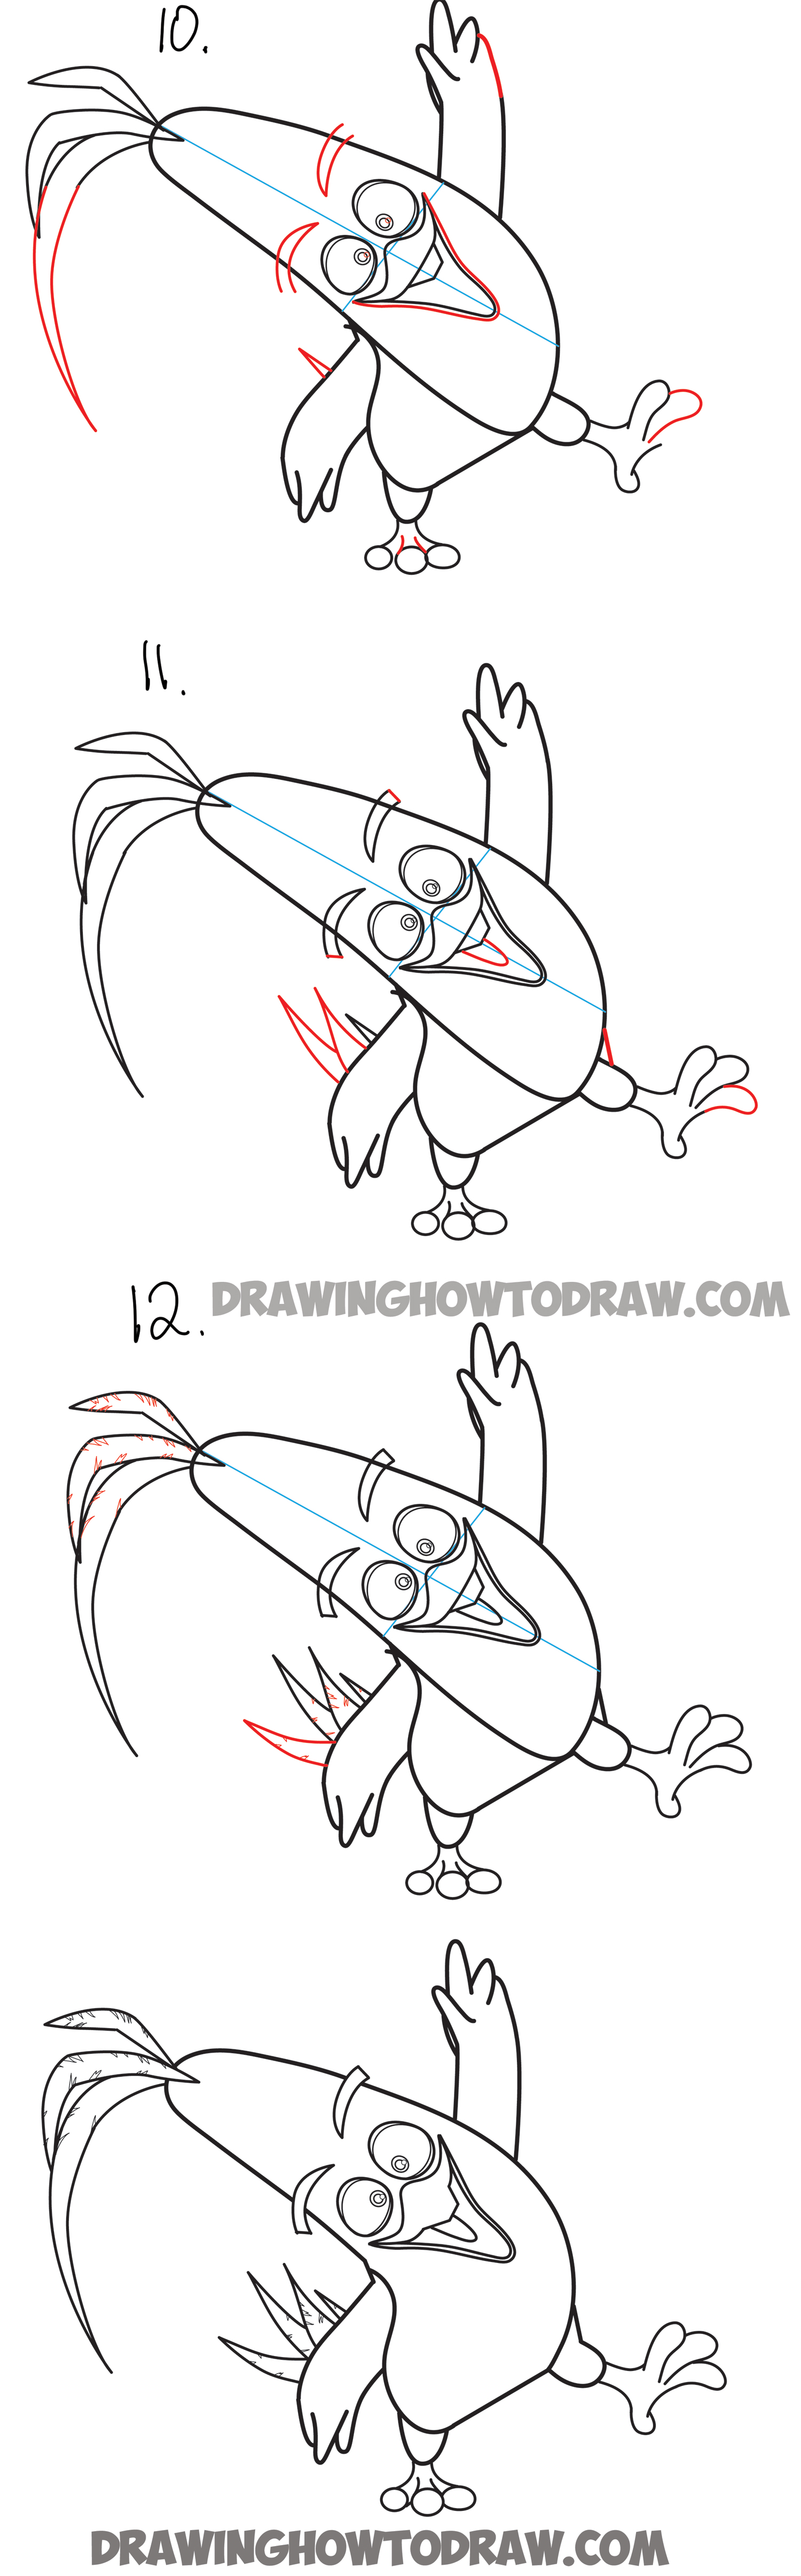 how to draw chuck the yellow bird from the angry birds movie how